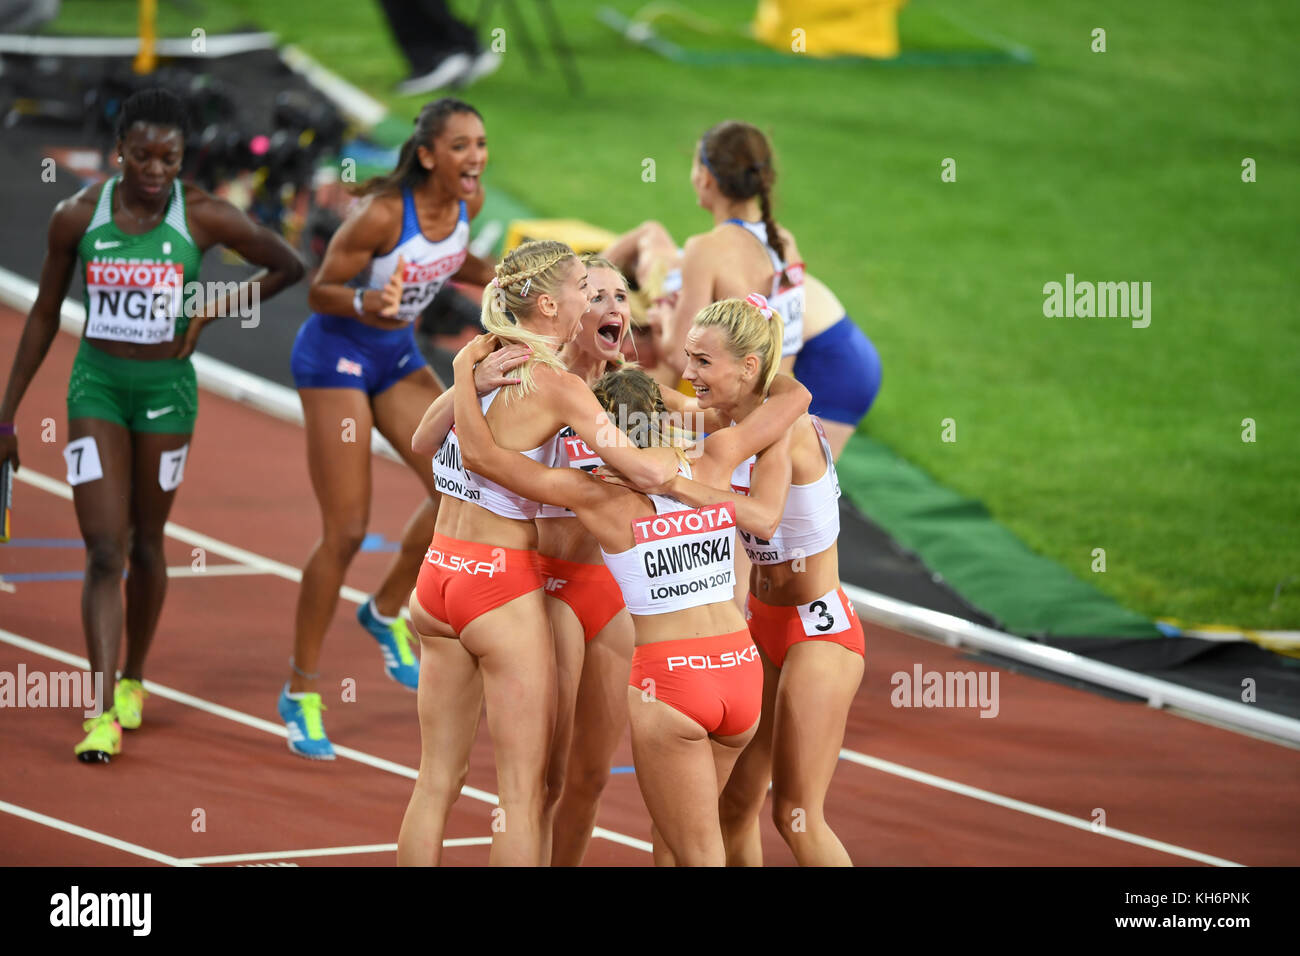 Polish team celebration - 4x400 Metres Relay women - IAAF World Championships - London 2017 - Stock Image